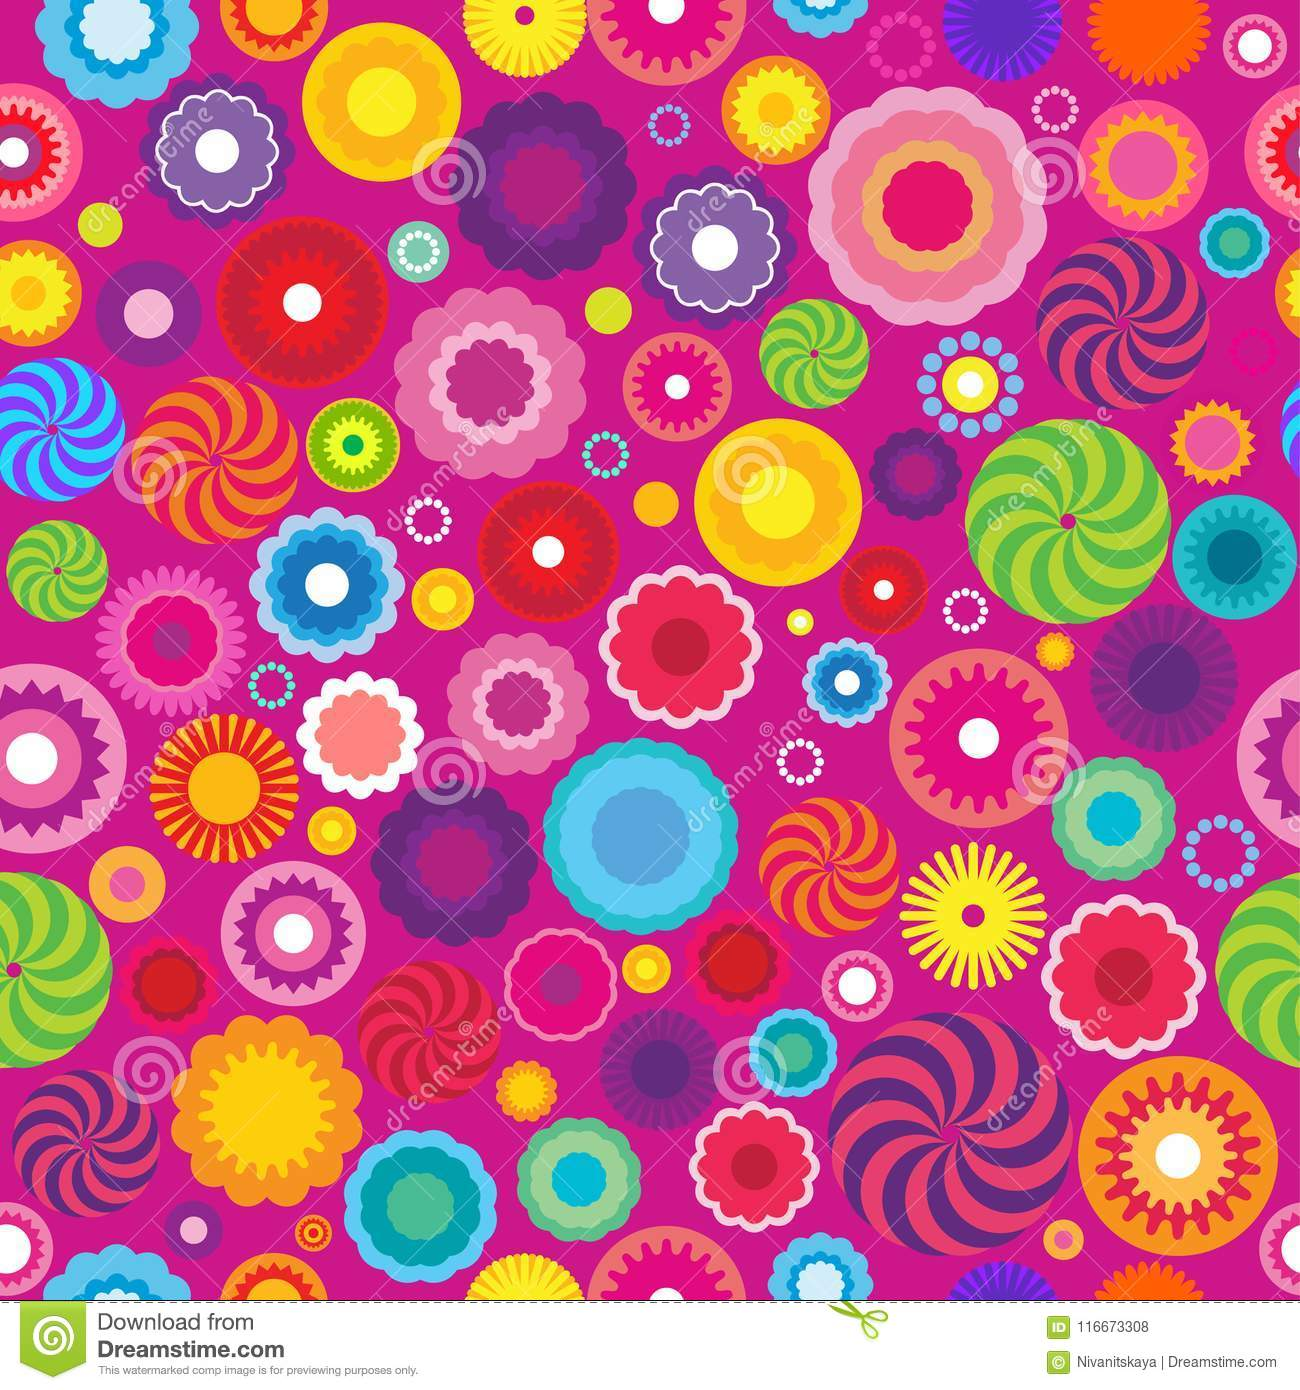 Floral Abstract Seamless Pattern. Geometric Shapes And Colors On A ...